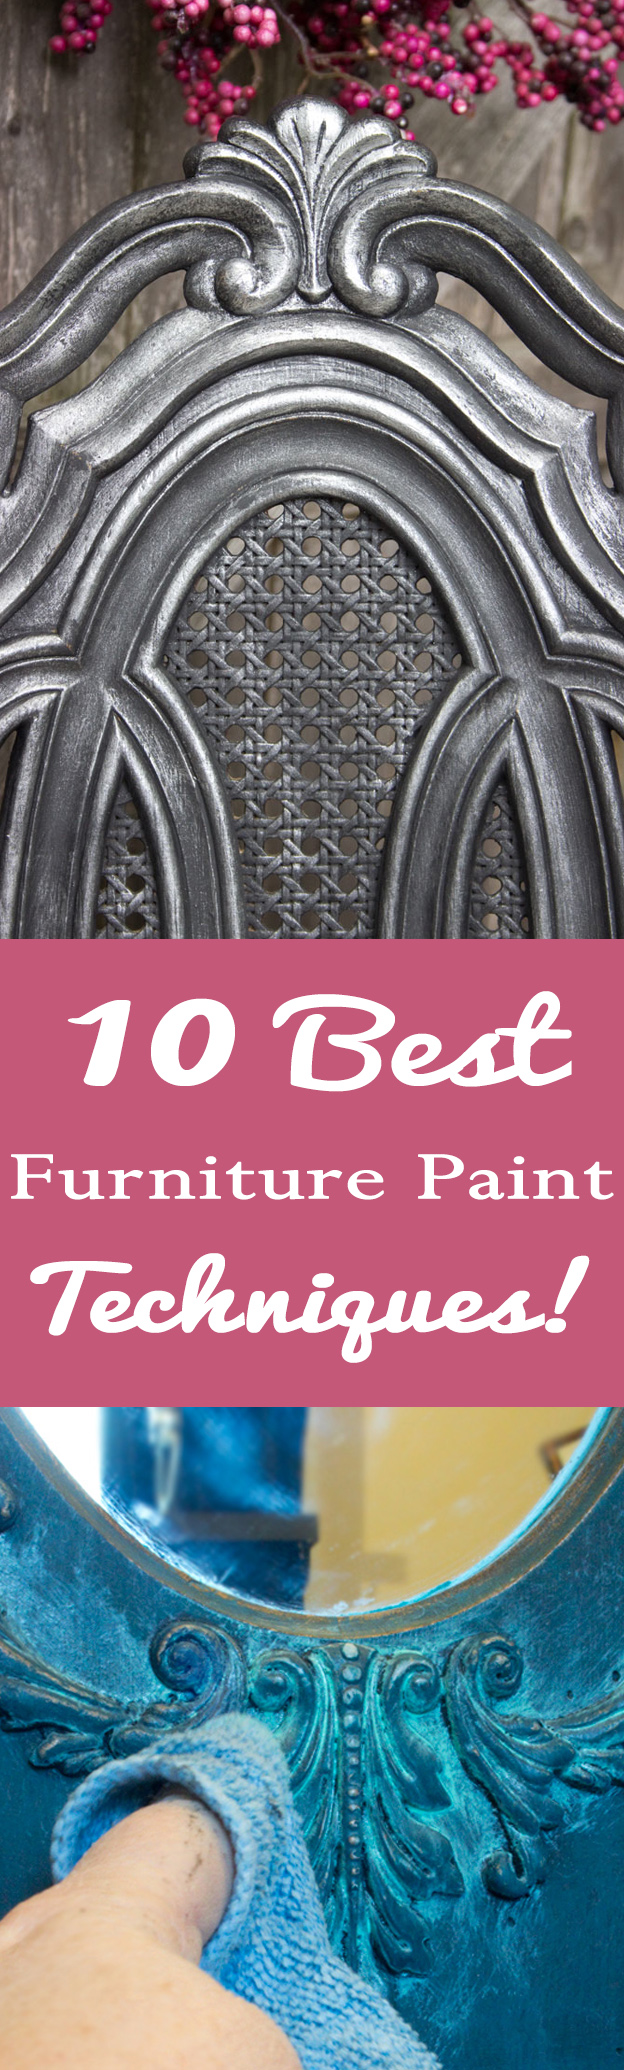 10 Best Furniture Painting Techniques The Graphics Fairy